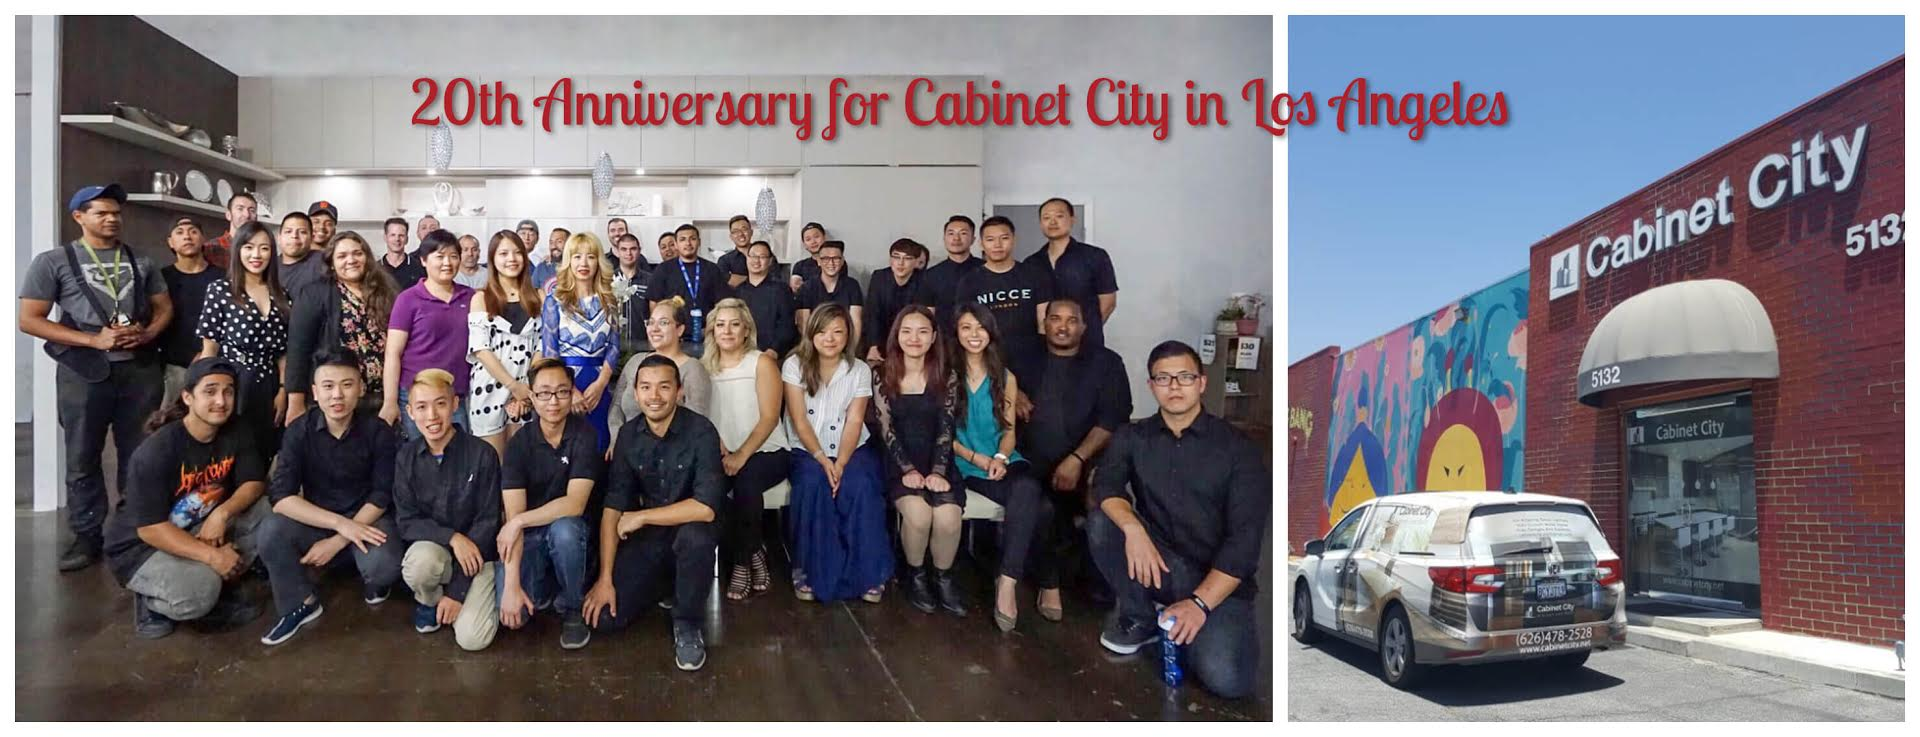 cabinet-city-20th-anniversary-san-gabriel-showroom